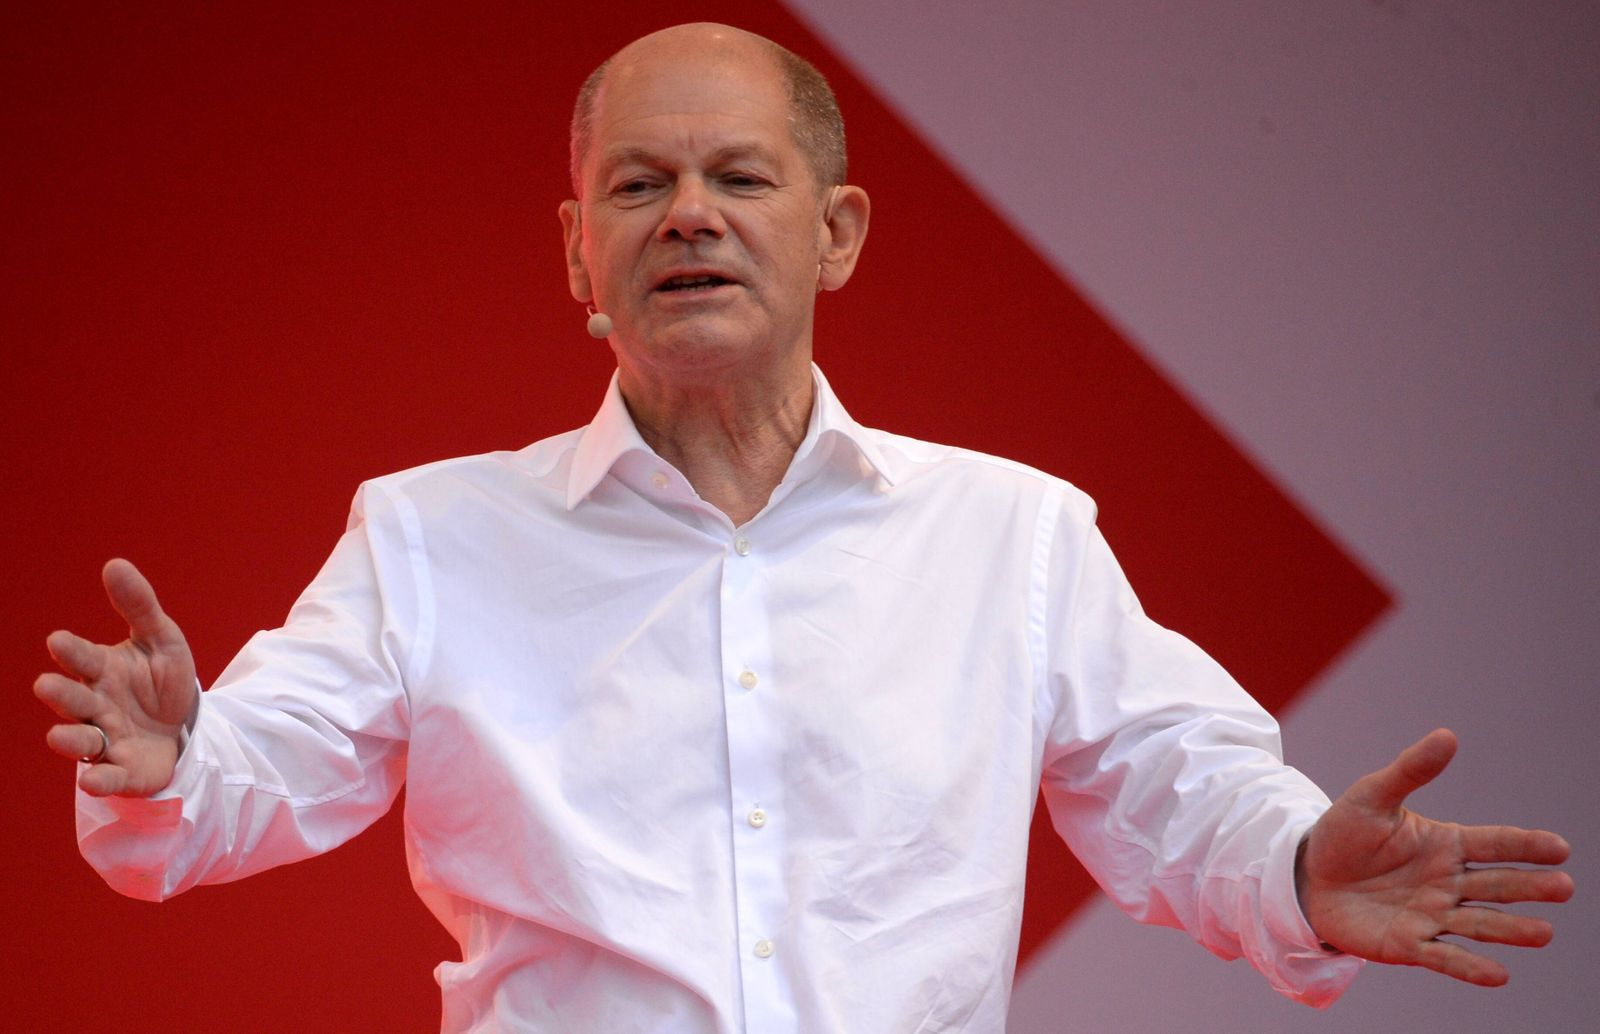 Germany Chancellor Election SPD 6658572 24.09.2021 German Finance Minister, Vice-Chancellor and the Social Democratic P